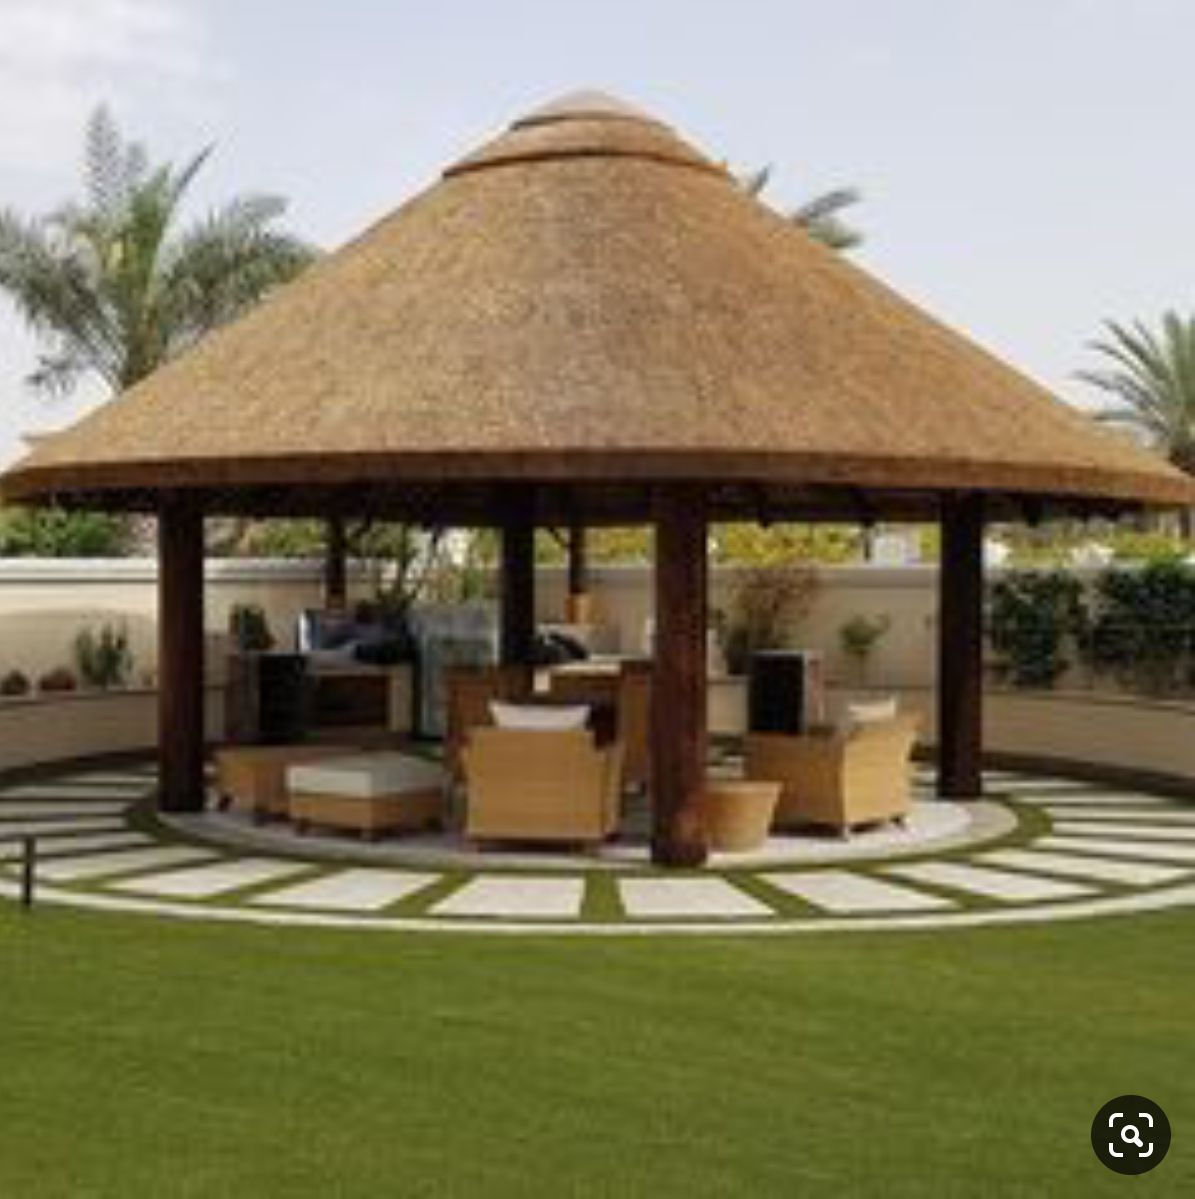 Thatch Bundles Of Reed Or Straw Village House Design House Plan Gallery Beautiful House Plans